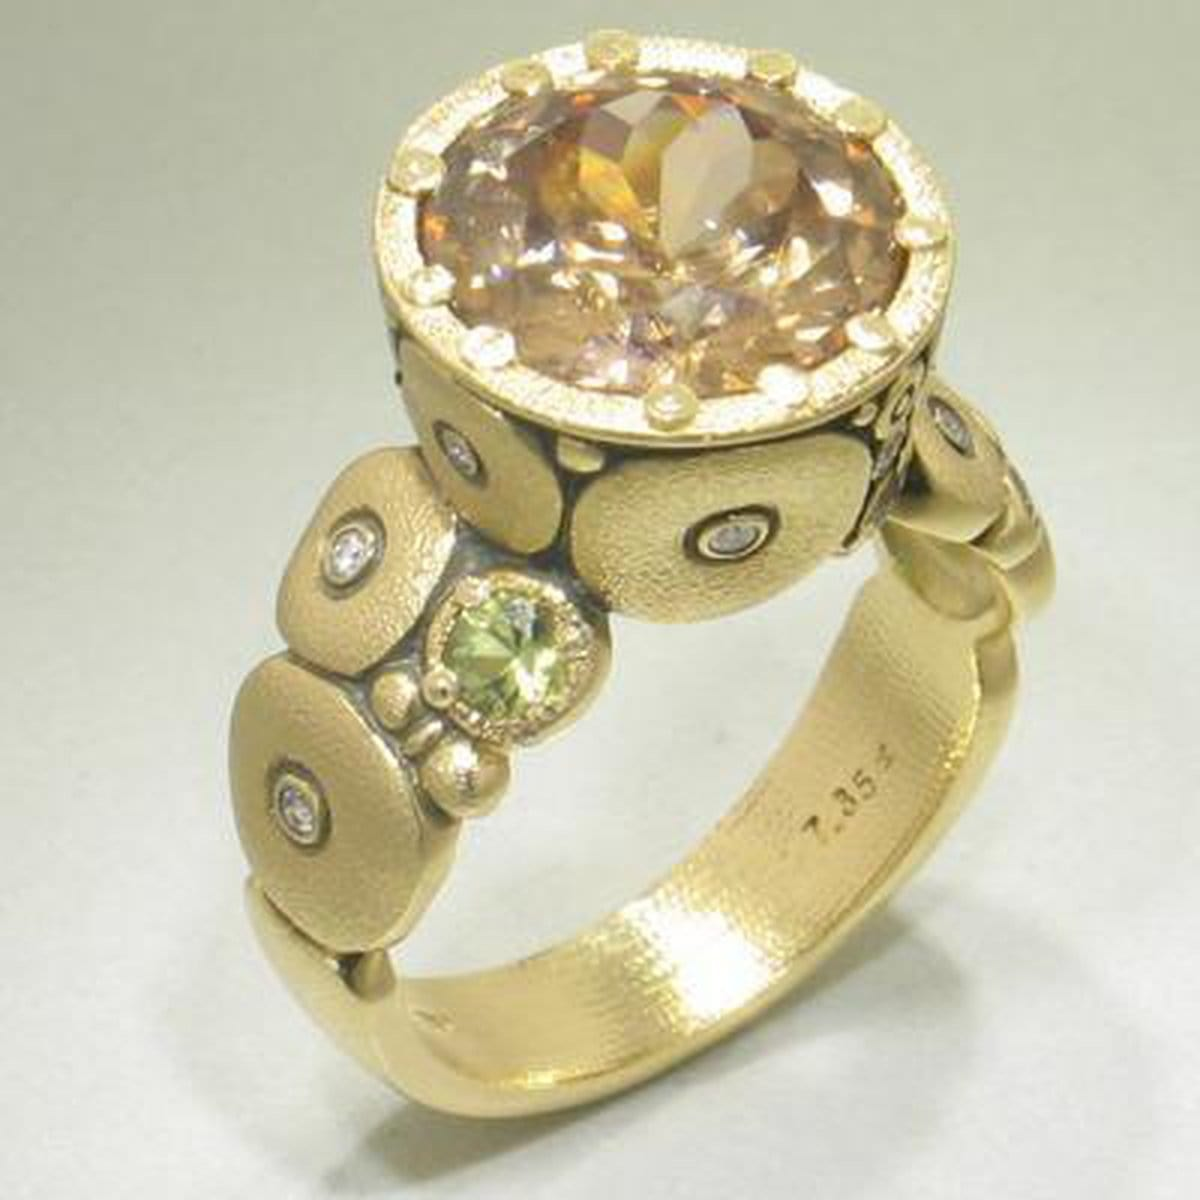 Orchard Yellow Zircon Ring - R-115S-Alex Sepkus-Renee Taylor Gallery